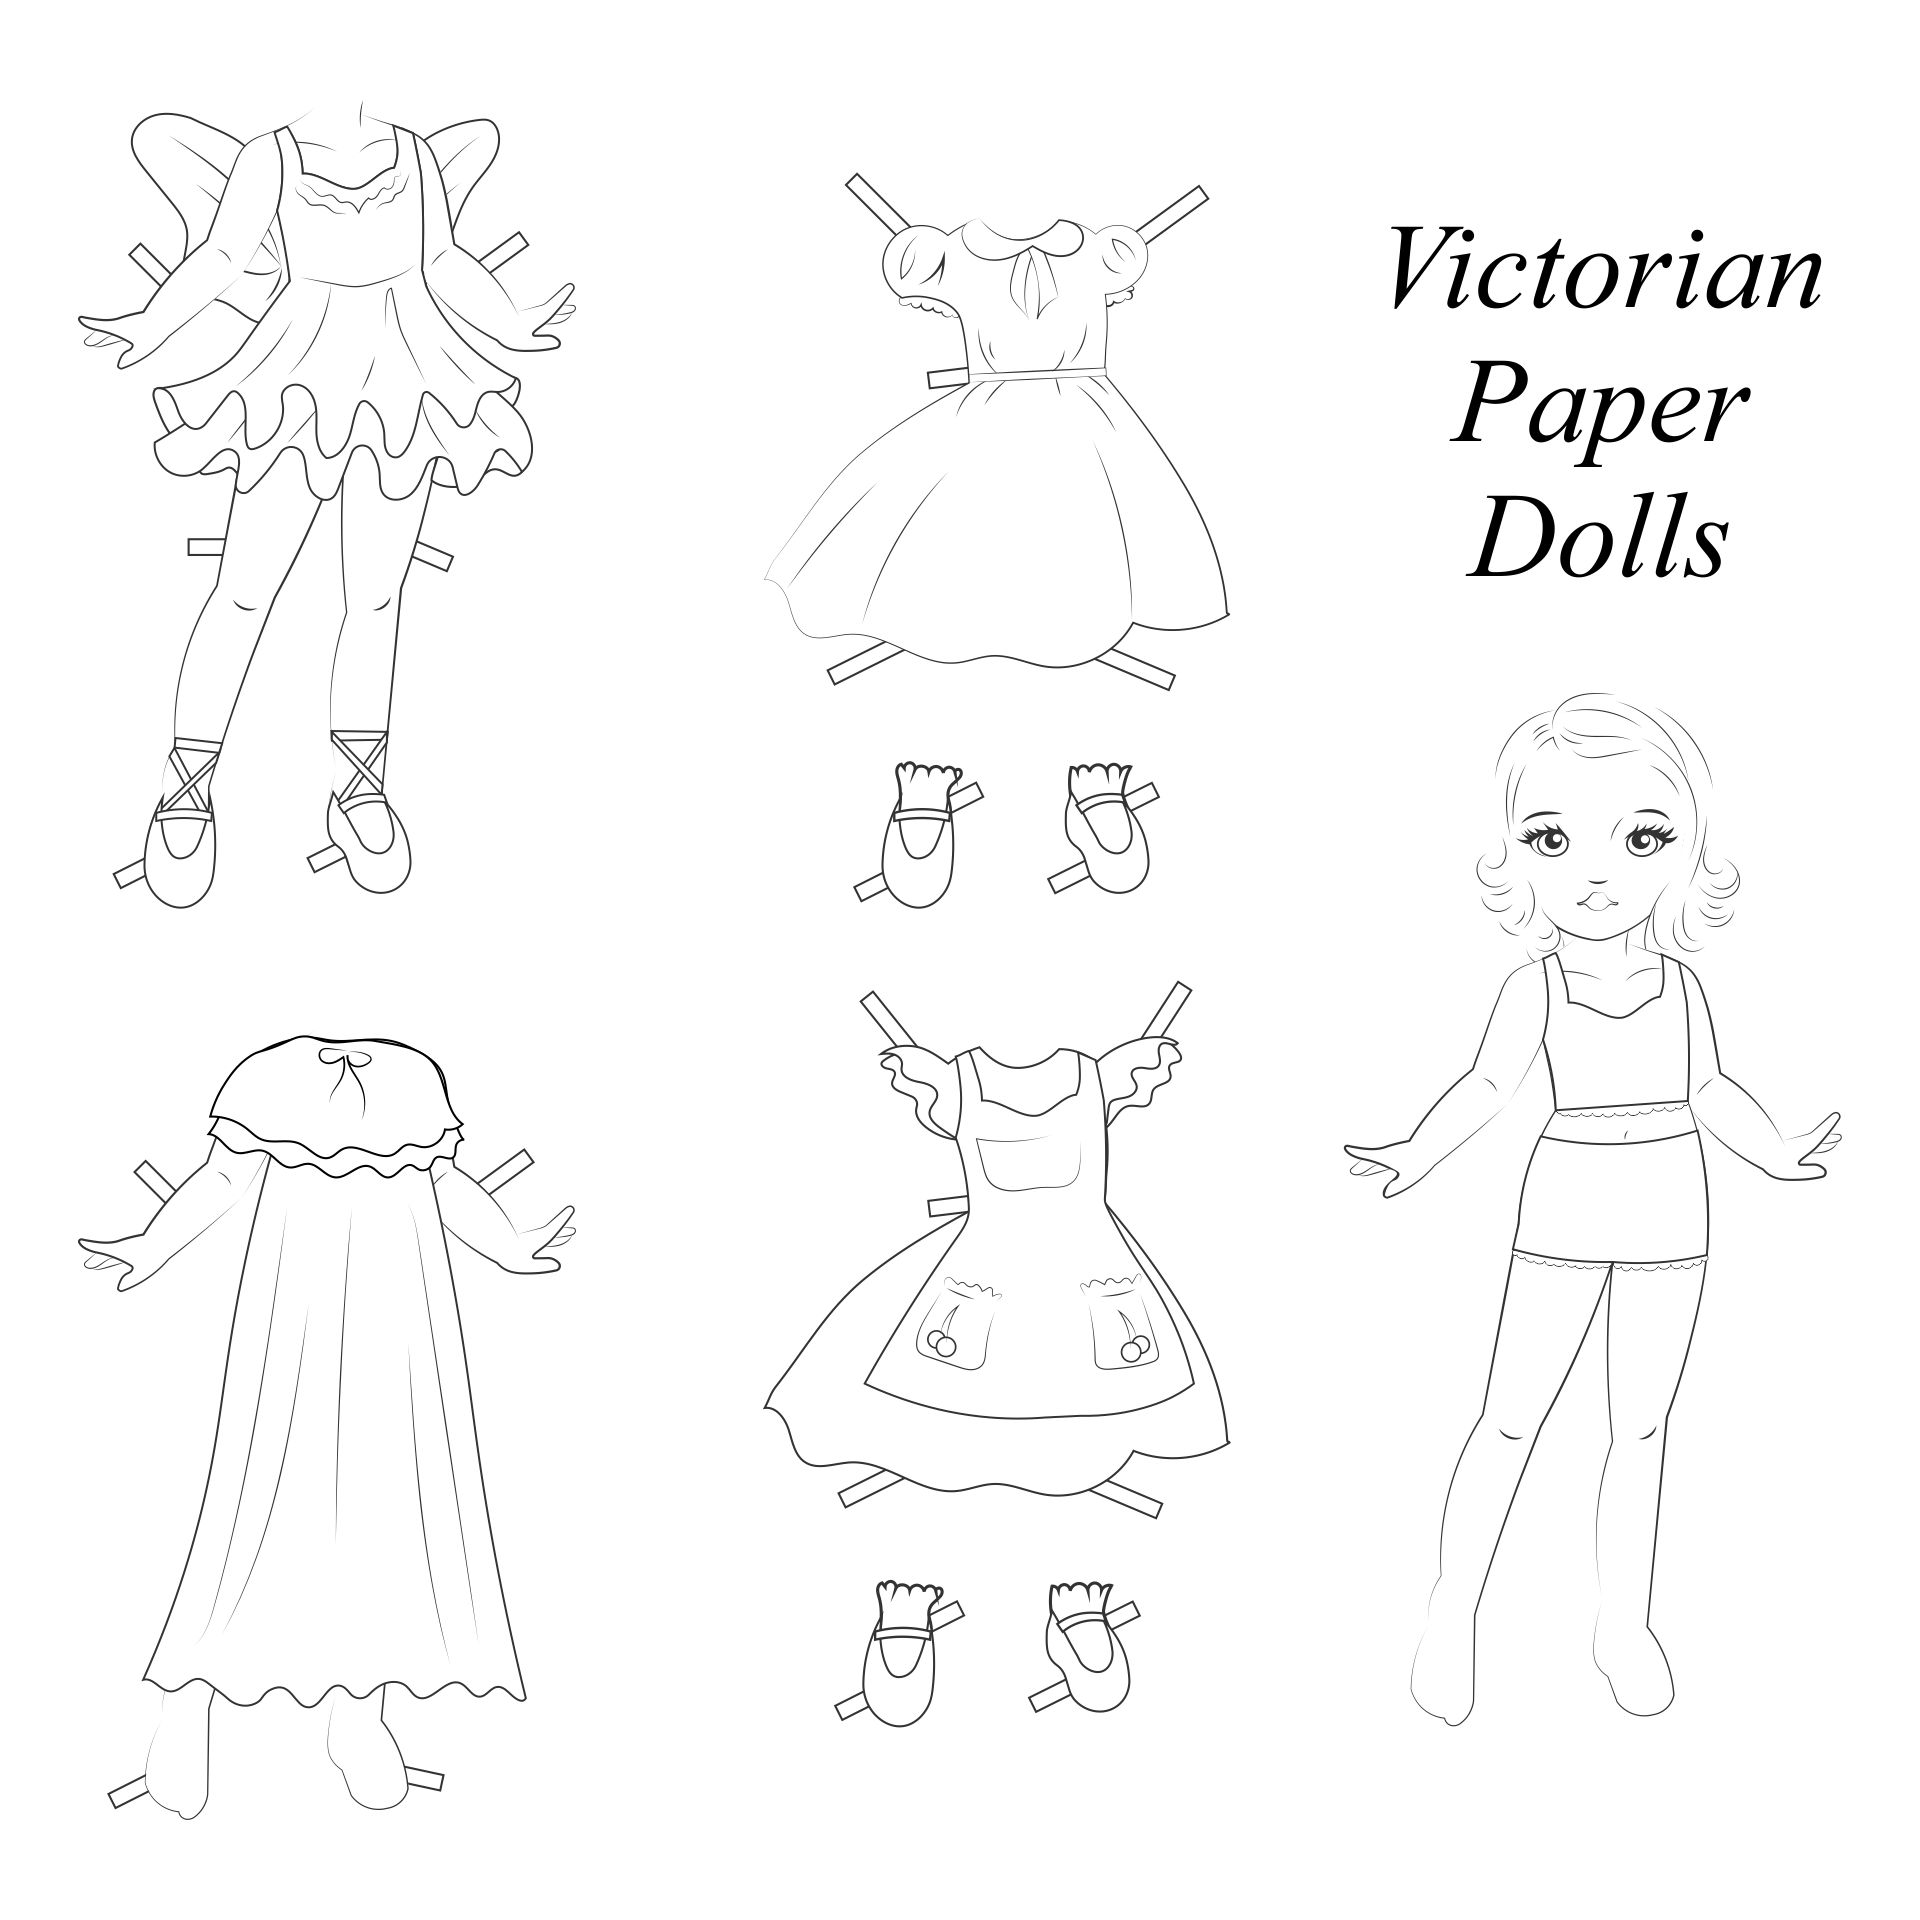 Printable Victorian Paper Dolls Coloring Pages